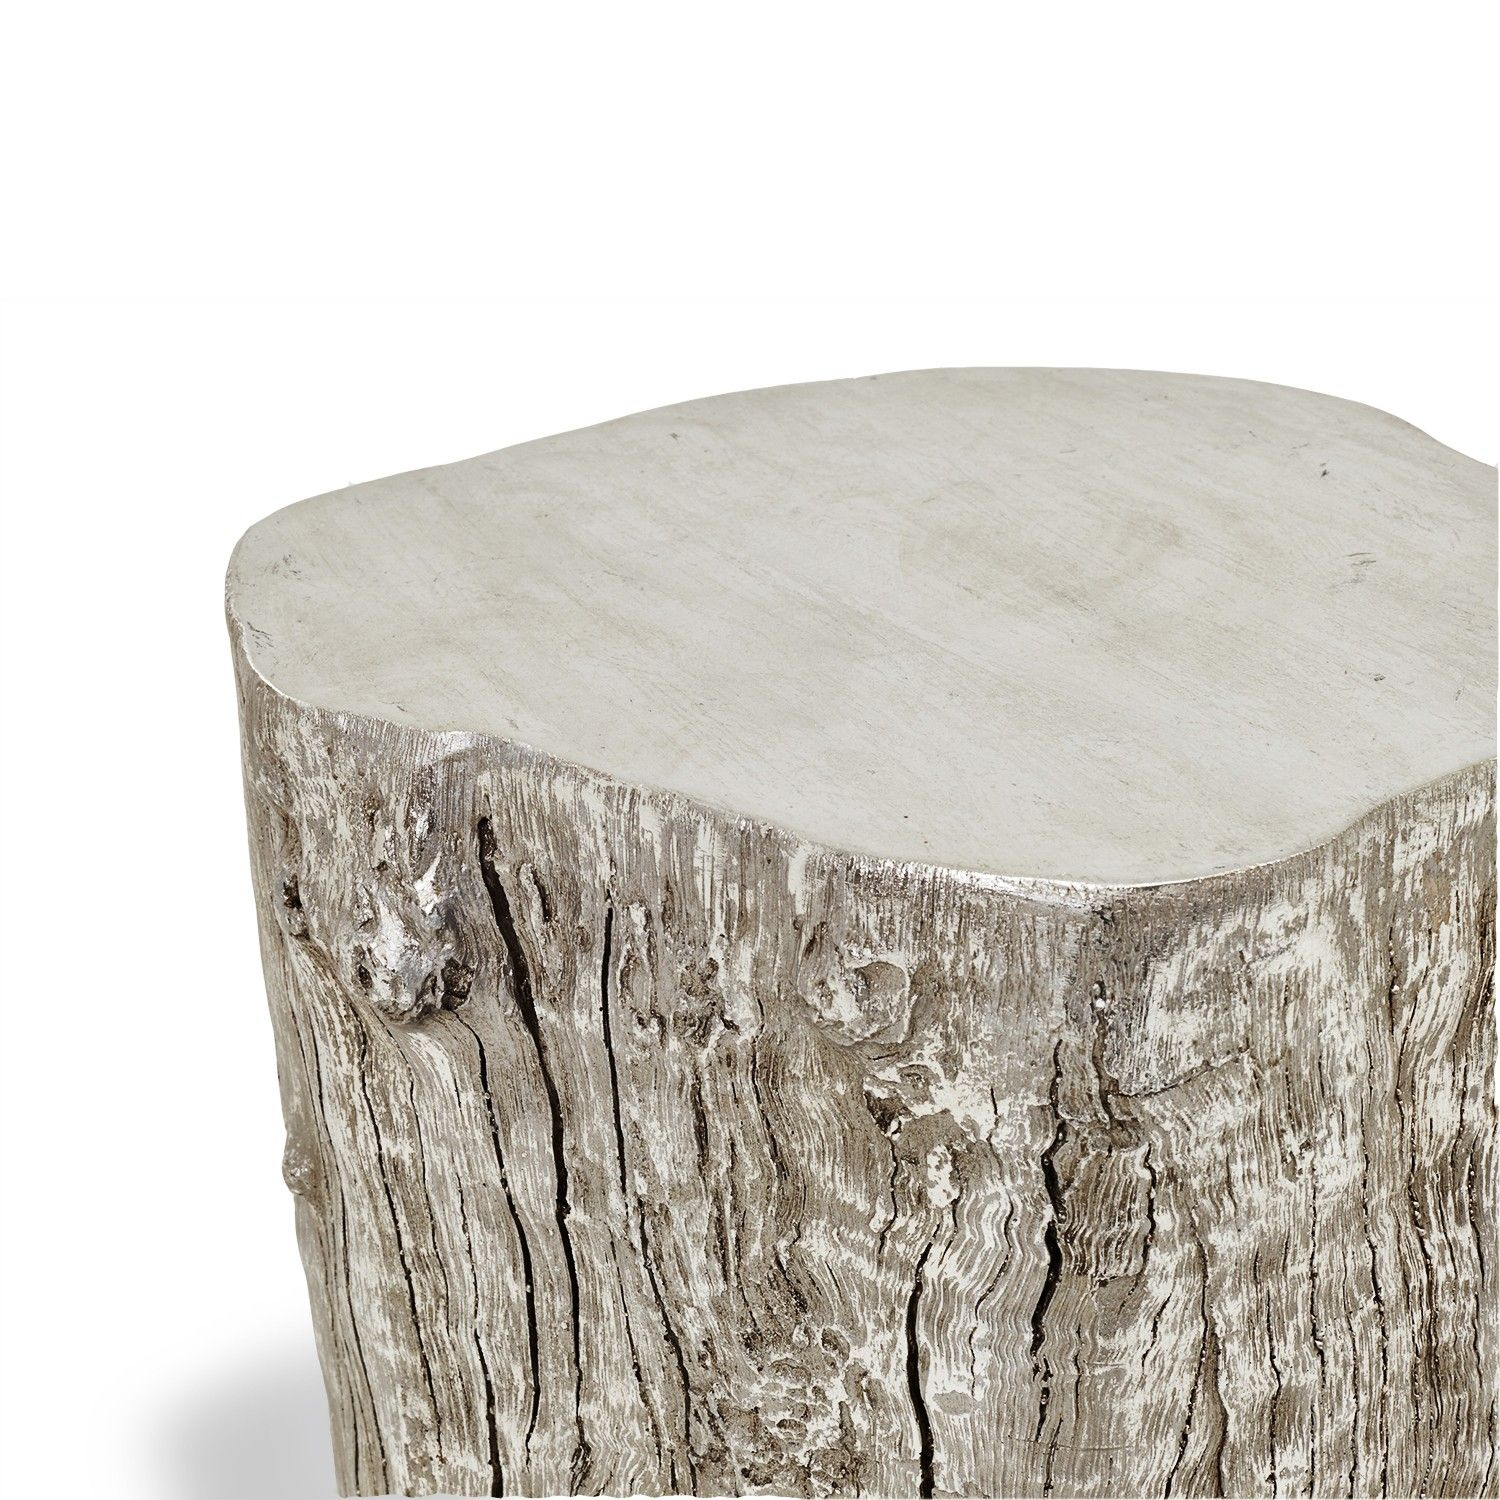 Exclusively at ABC, the Origin stool features natural forms with an edge. Made from resin that has been cast from a naturally fallen tree trunk, this rustic yet contemporary piece is finished in delicate silver leaf and doubles as a chic side table.